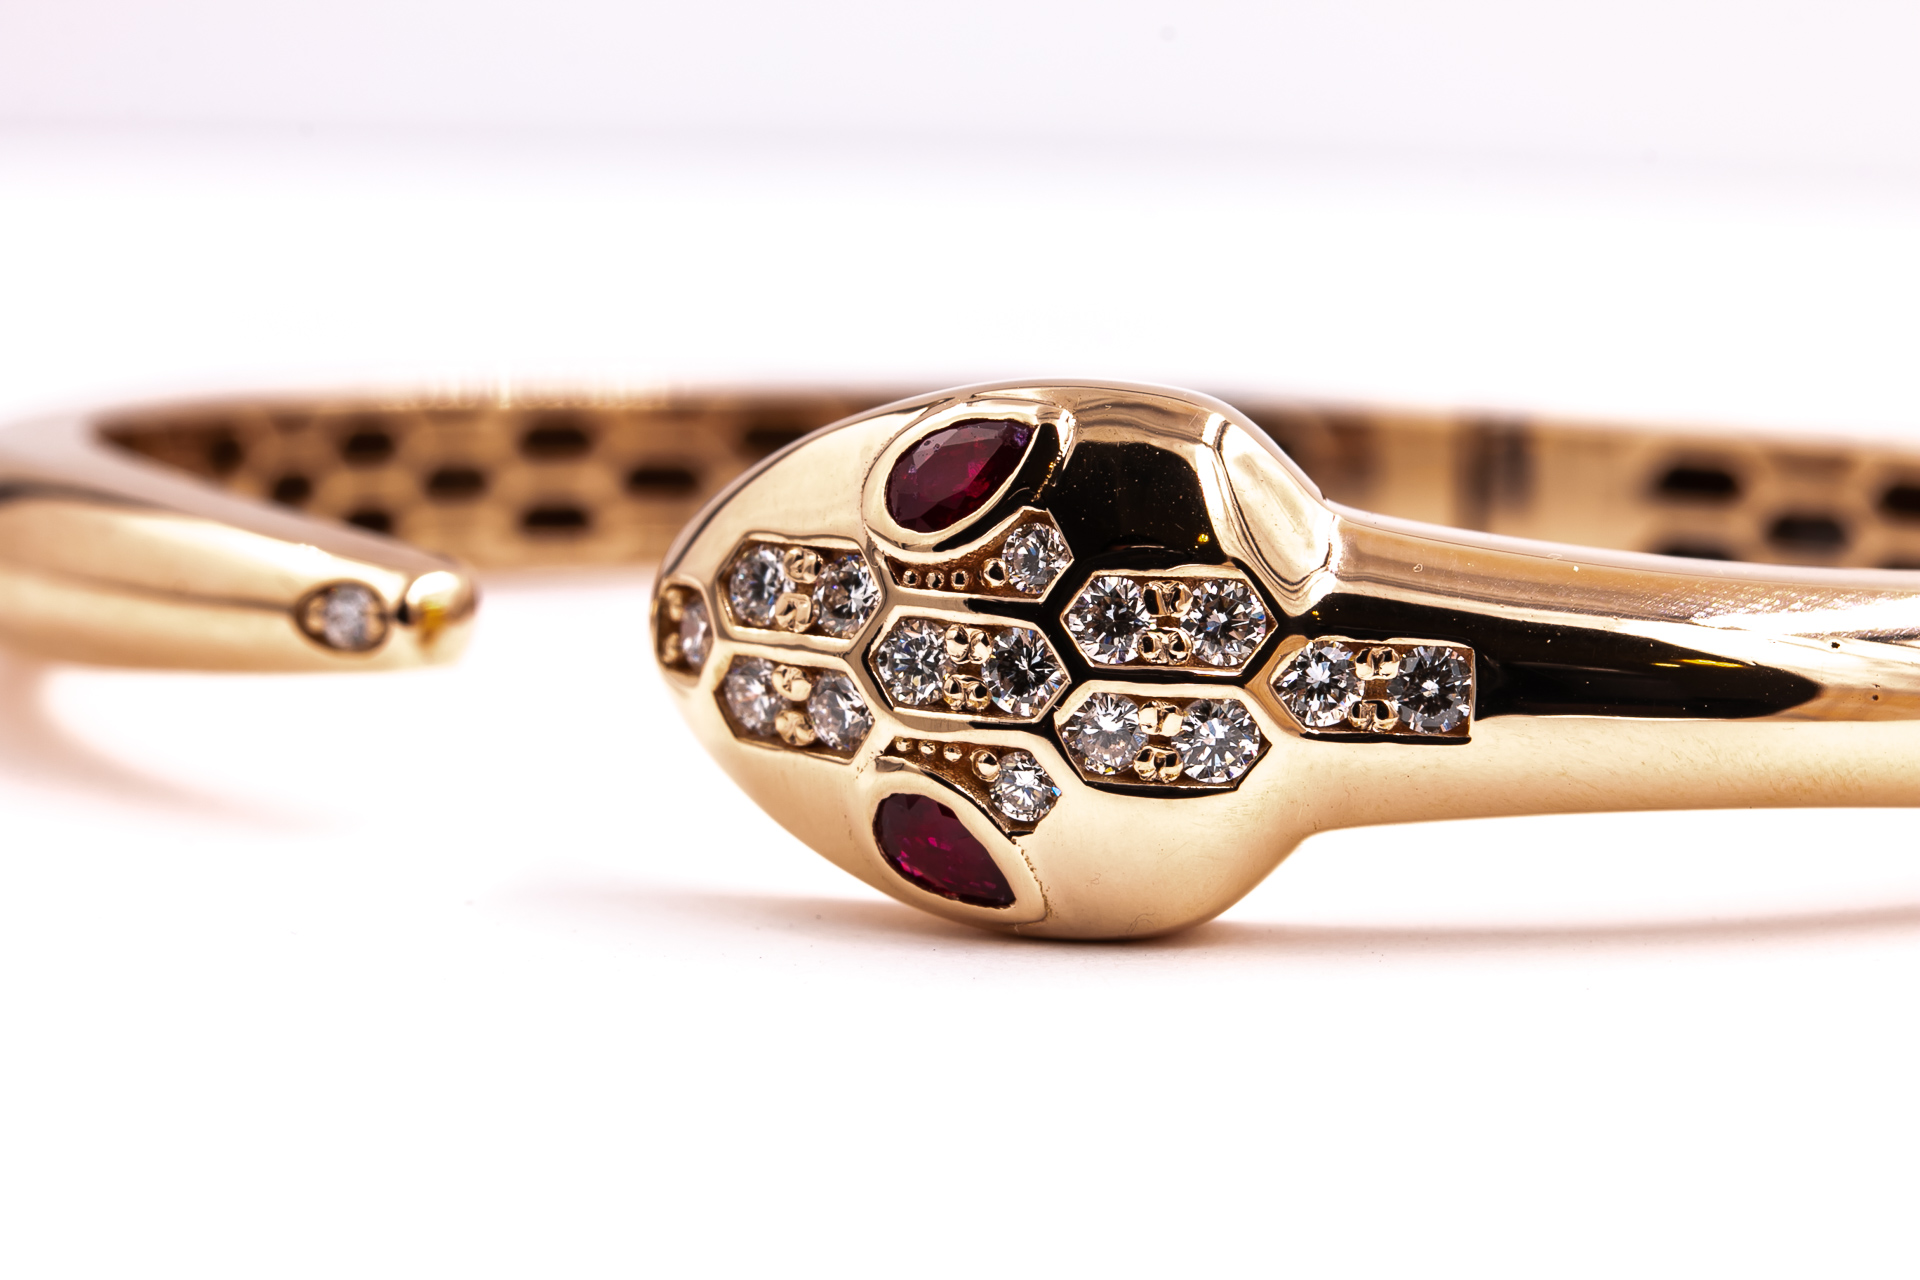 ruby-diamond-snake-bracelet-jewelry-2